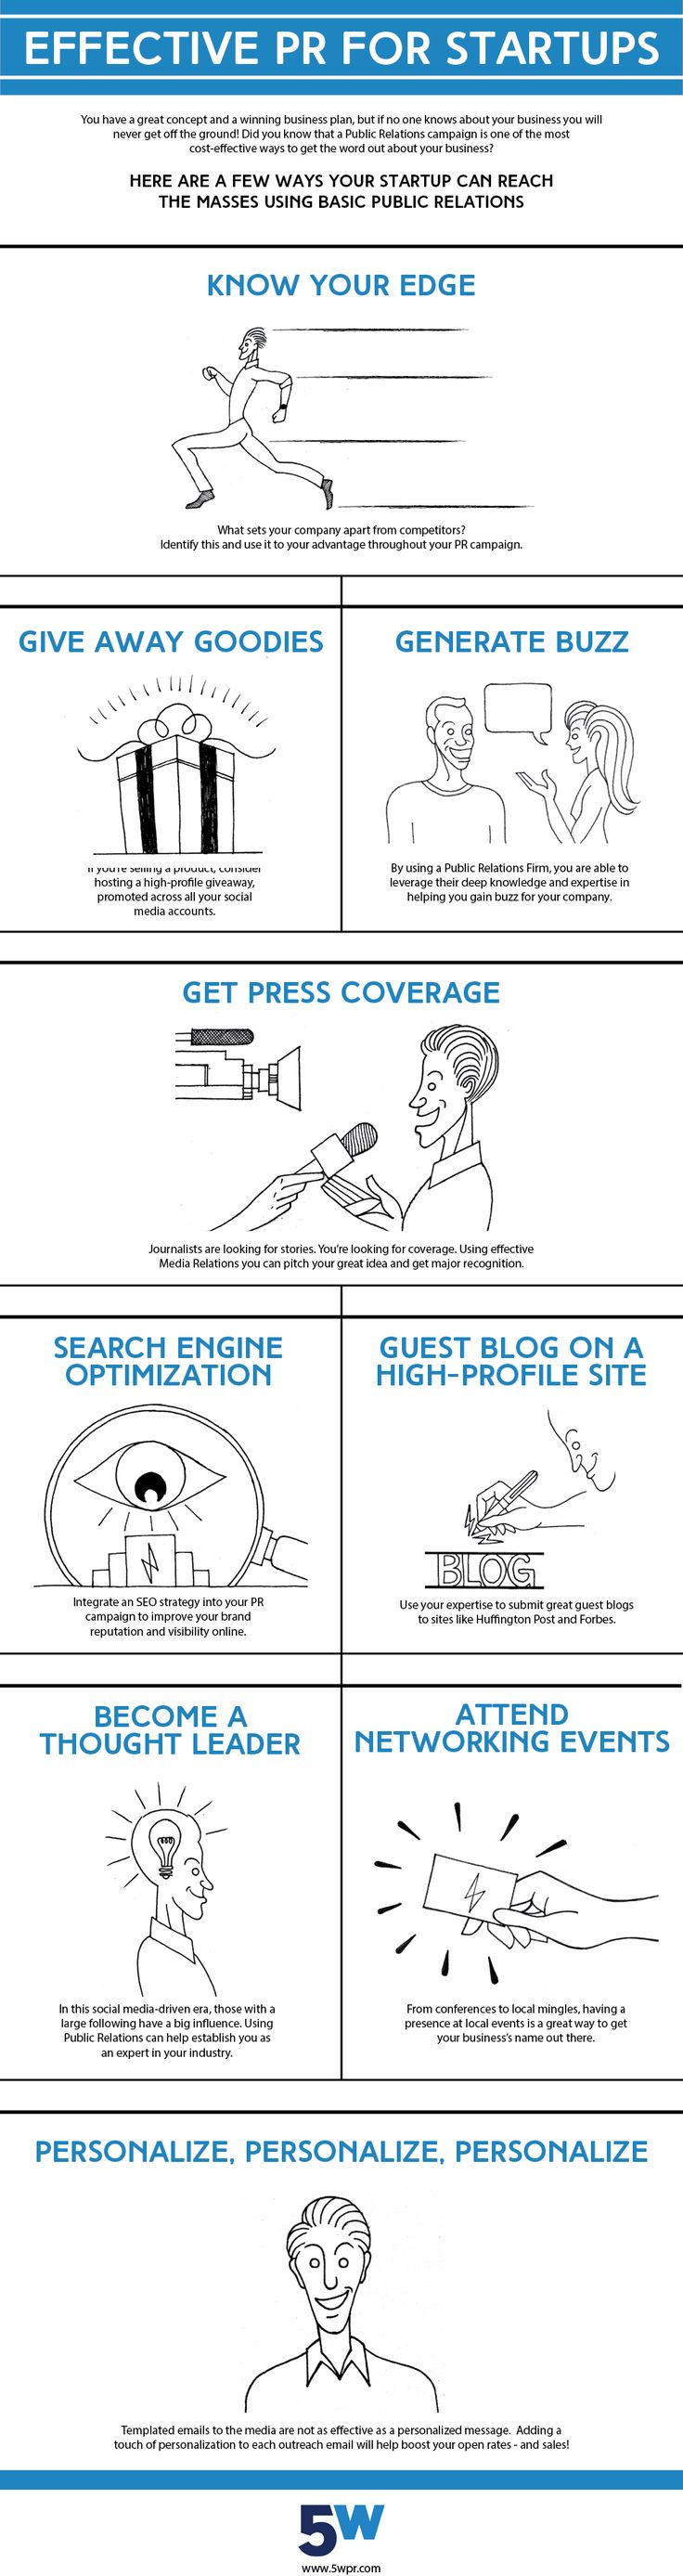 Effective PR for Startups. This infographic shows how any Startup can generate buzz and create a market through public relations.